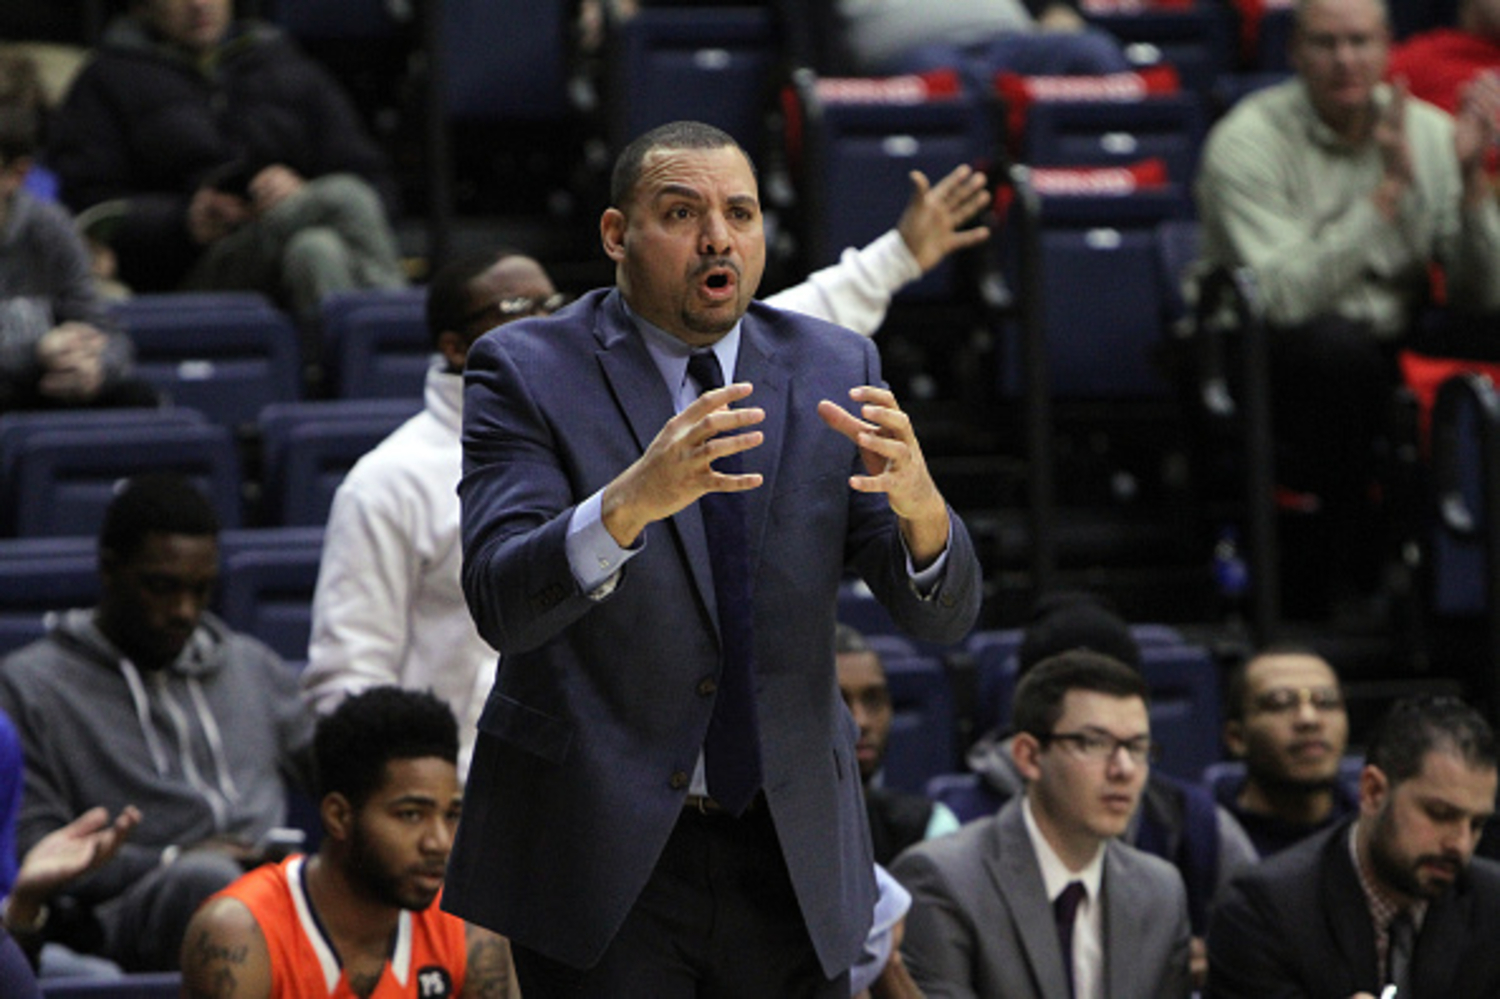 UT Martin head basketball coach Anthony Martin suddenly died at the age of 50